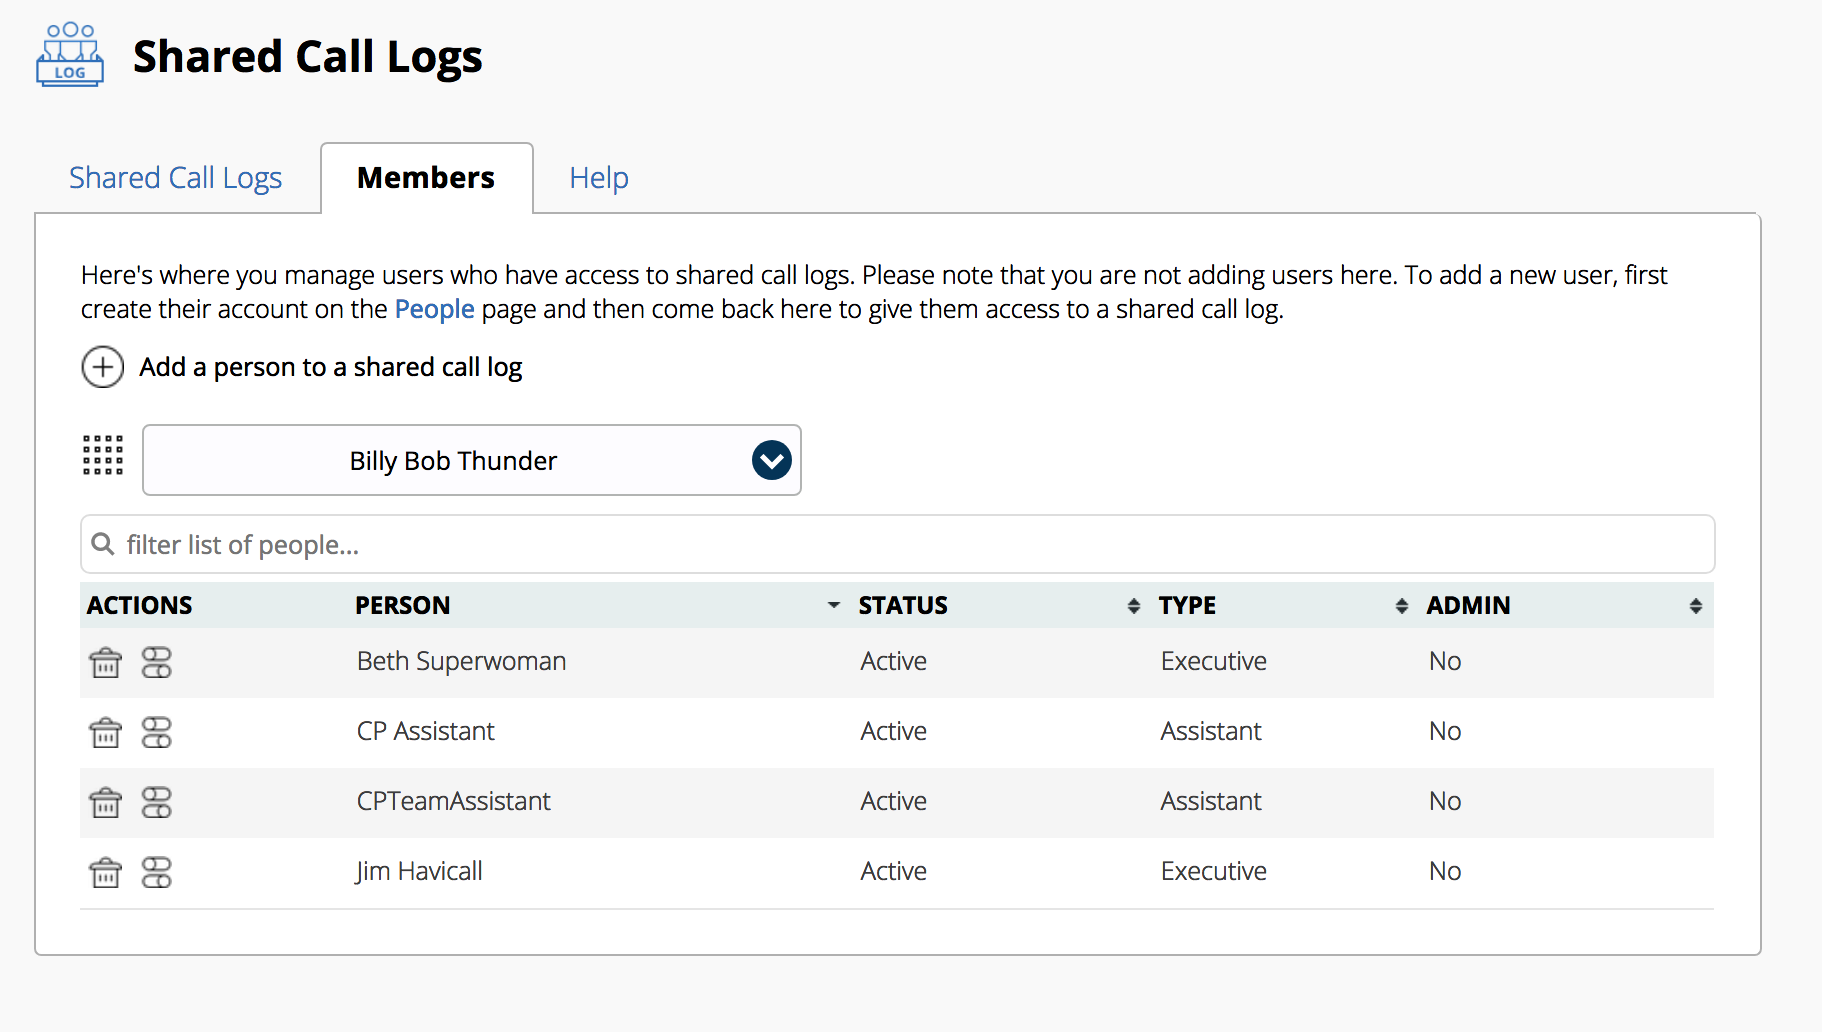 Shared Call Logs members